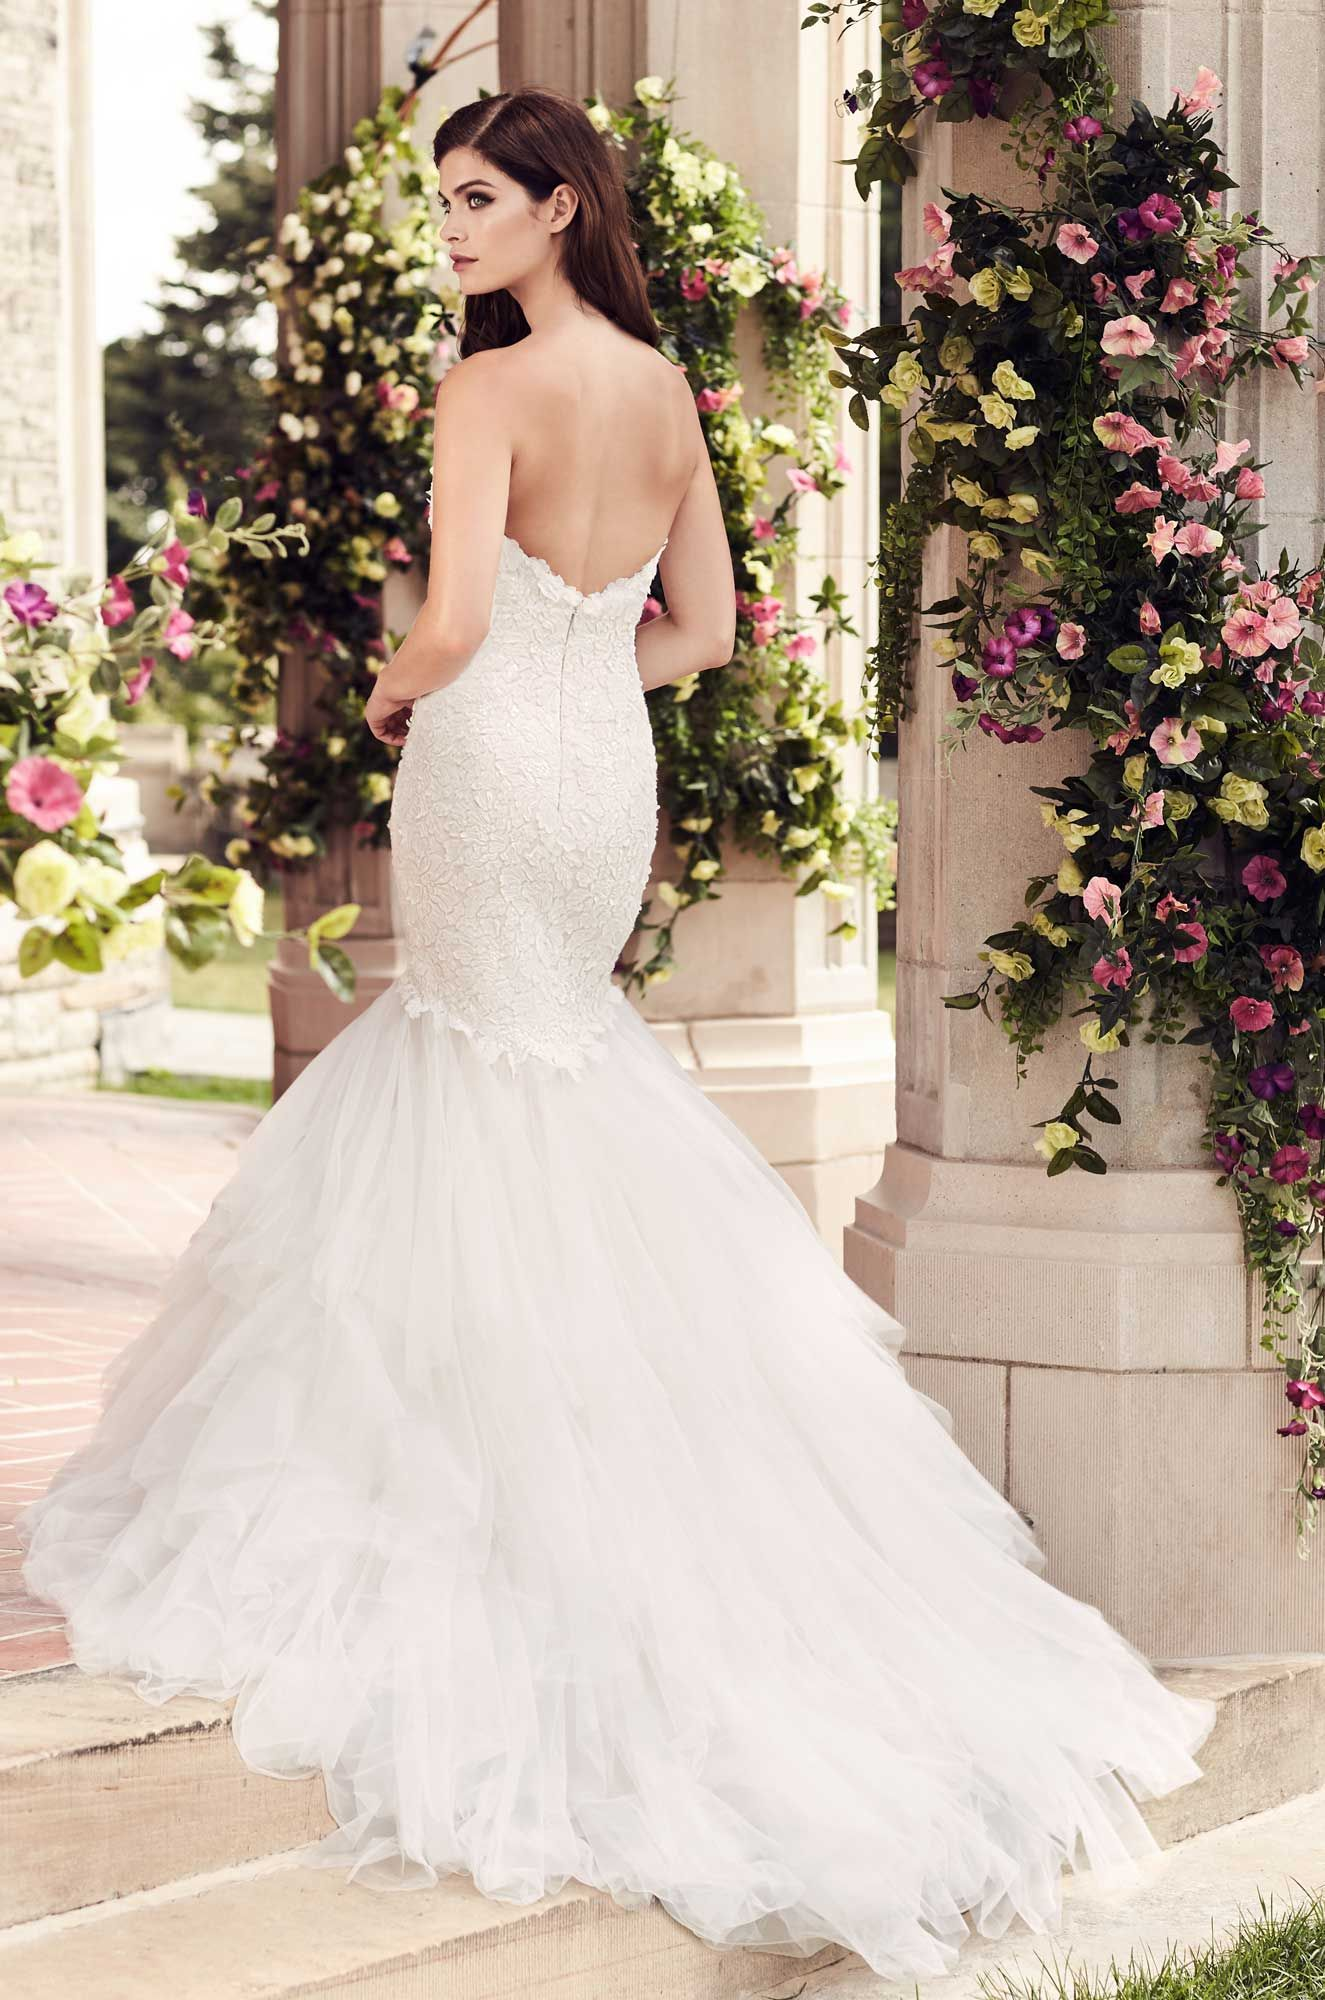 Fitted laser cut lace wedding dress style wedding dresses